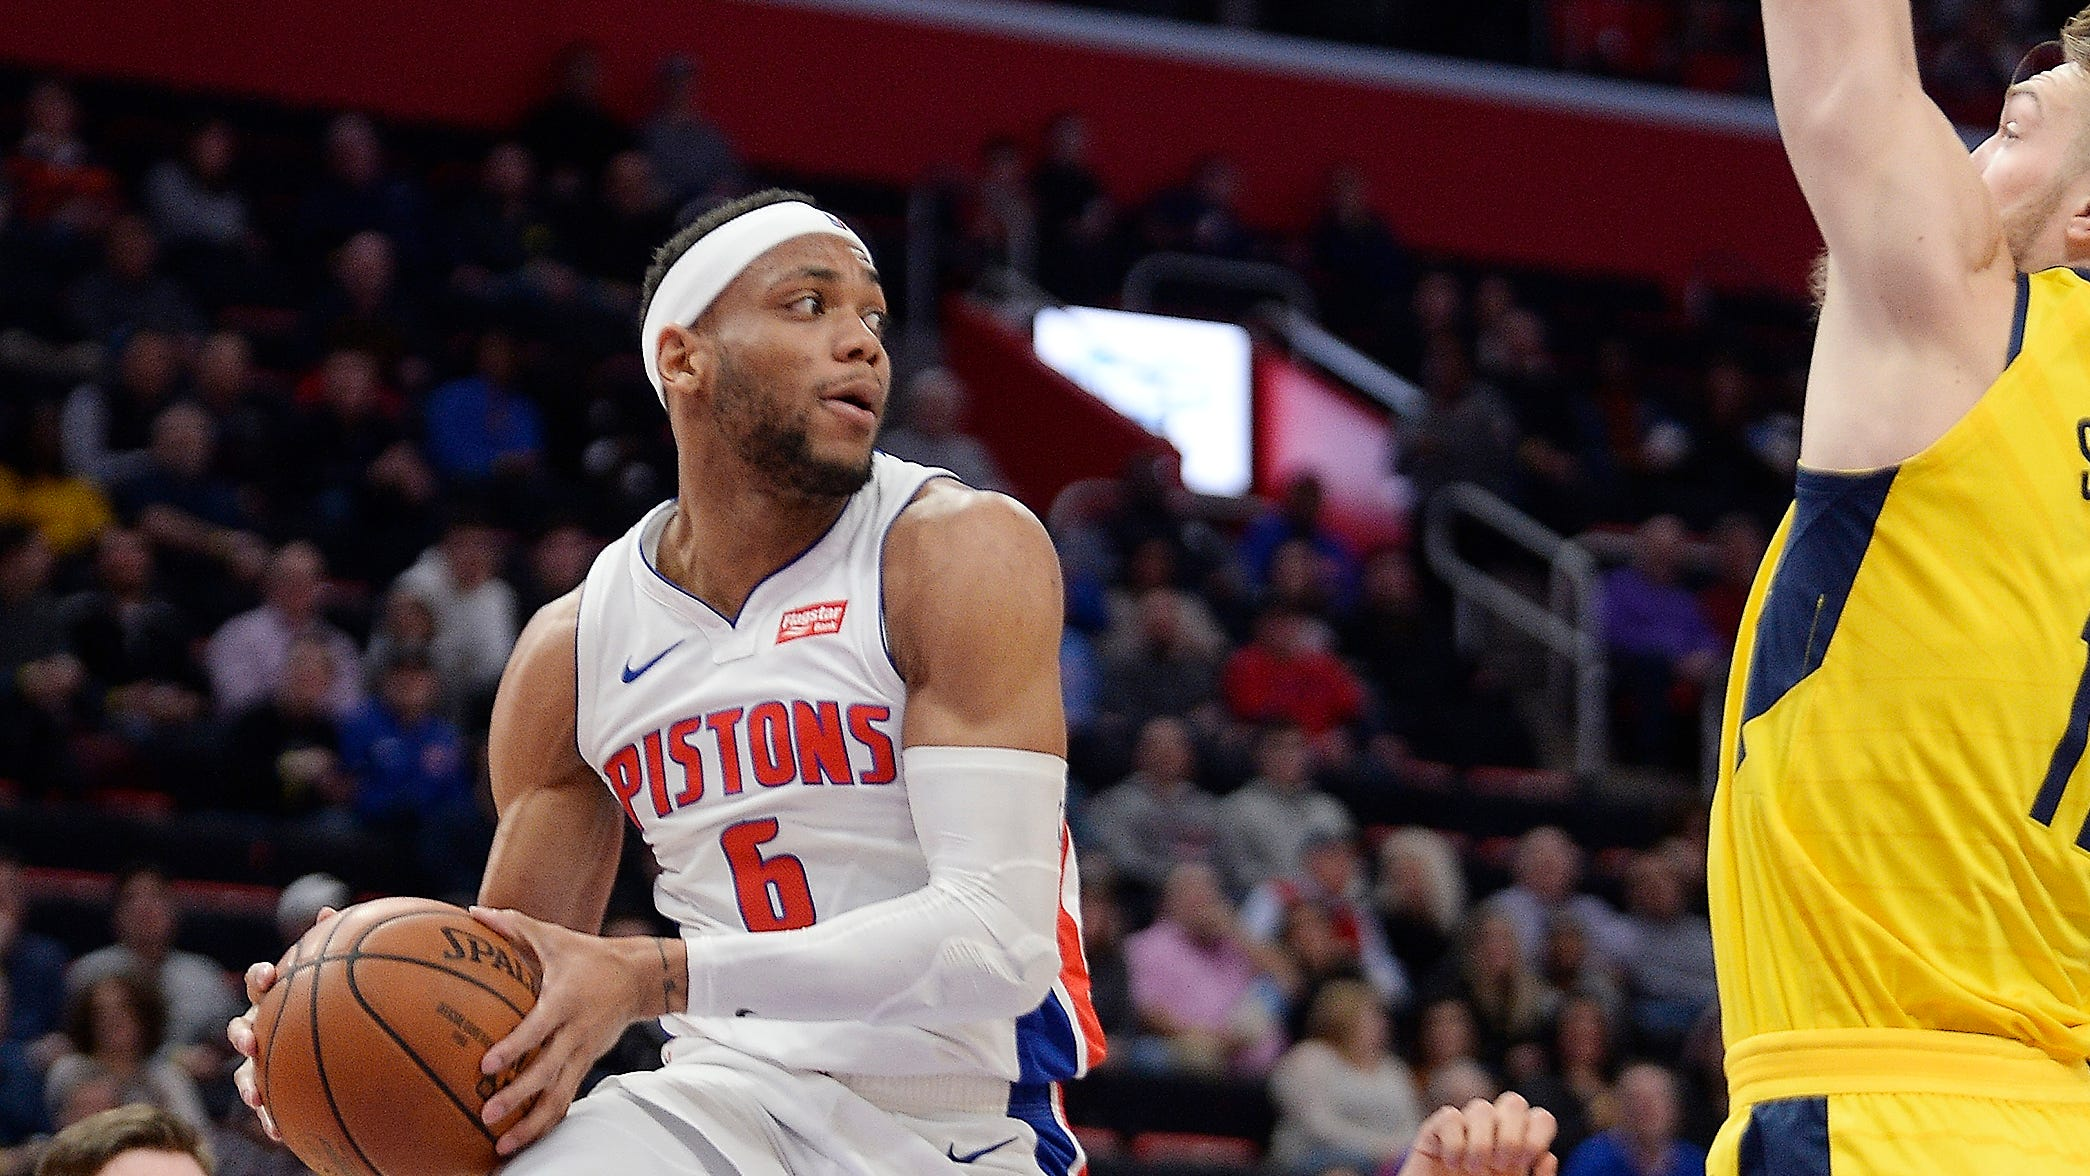 Pistons rookie Bruce Brown providing a jolt in lieu of points